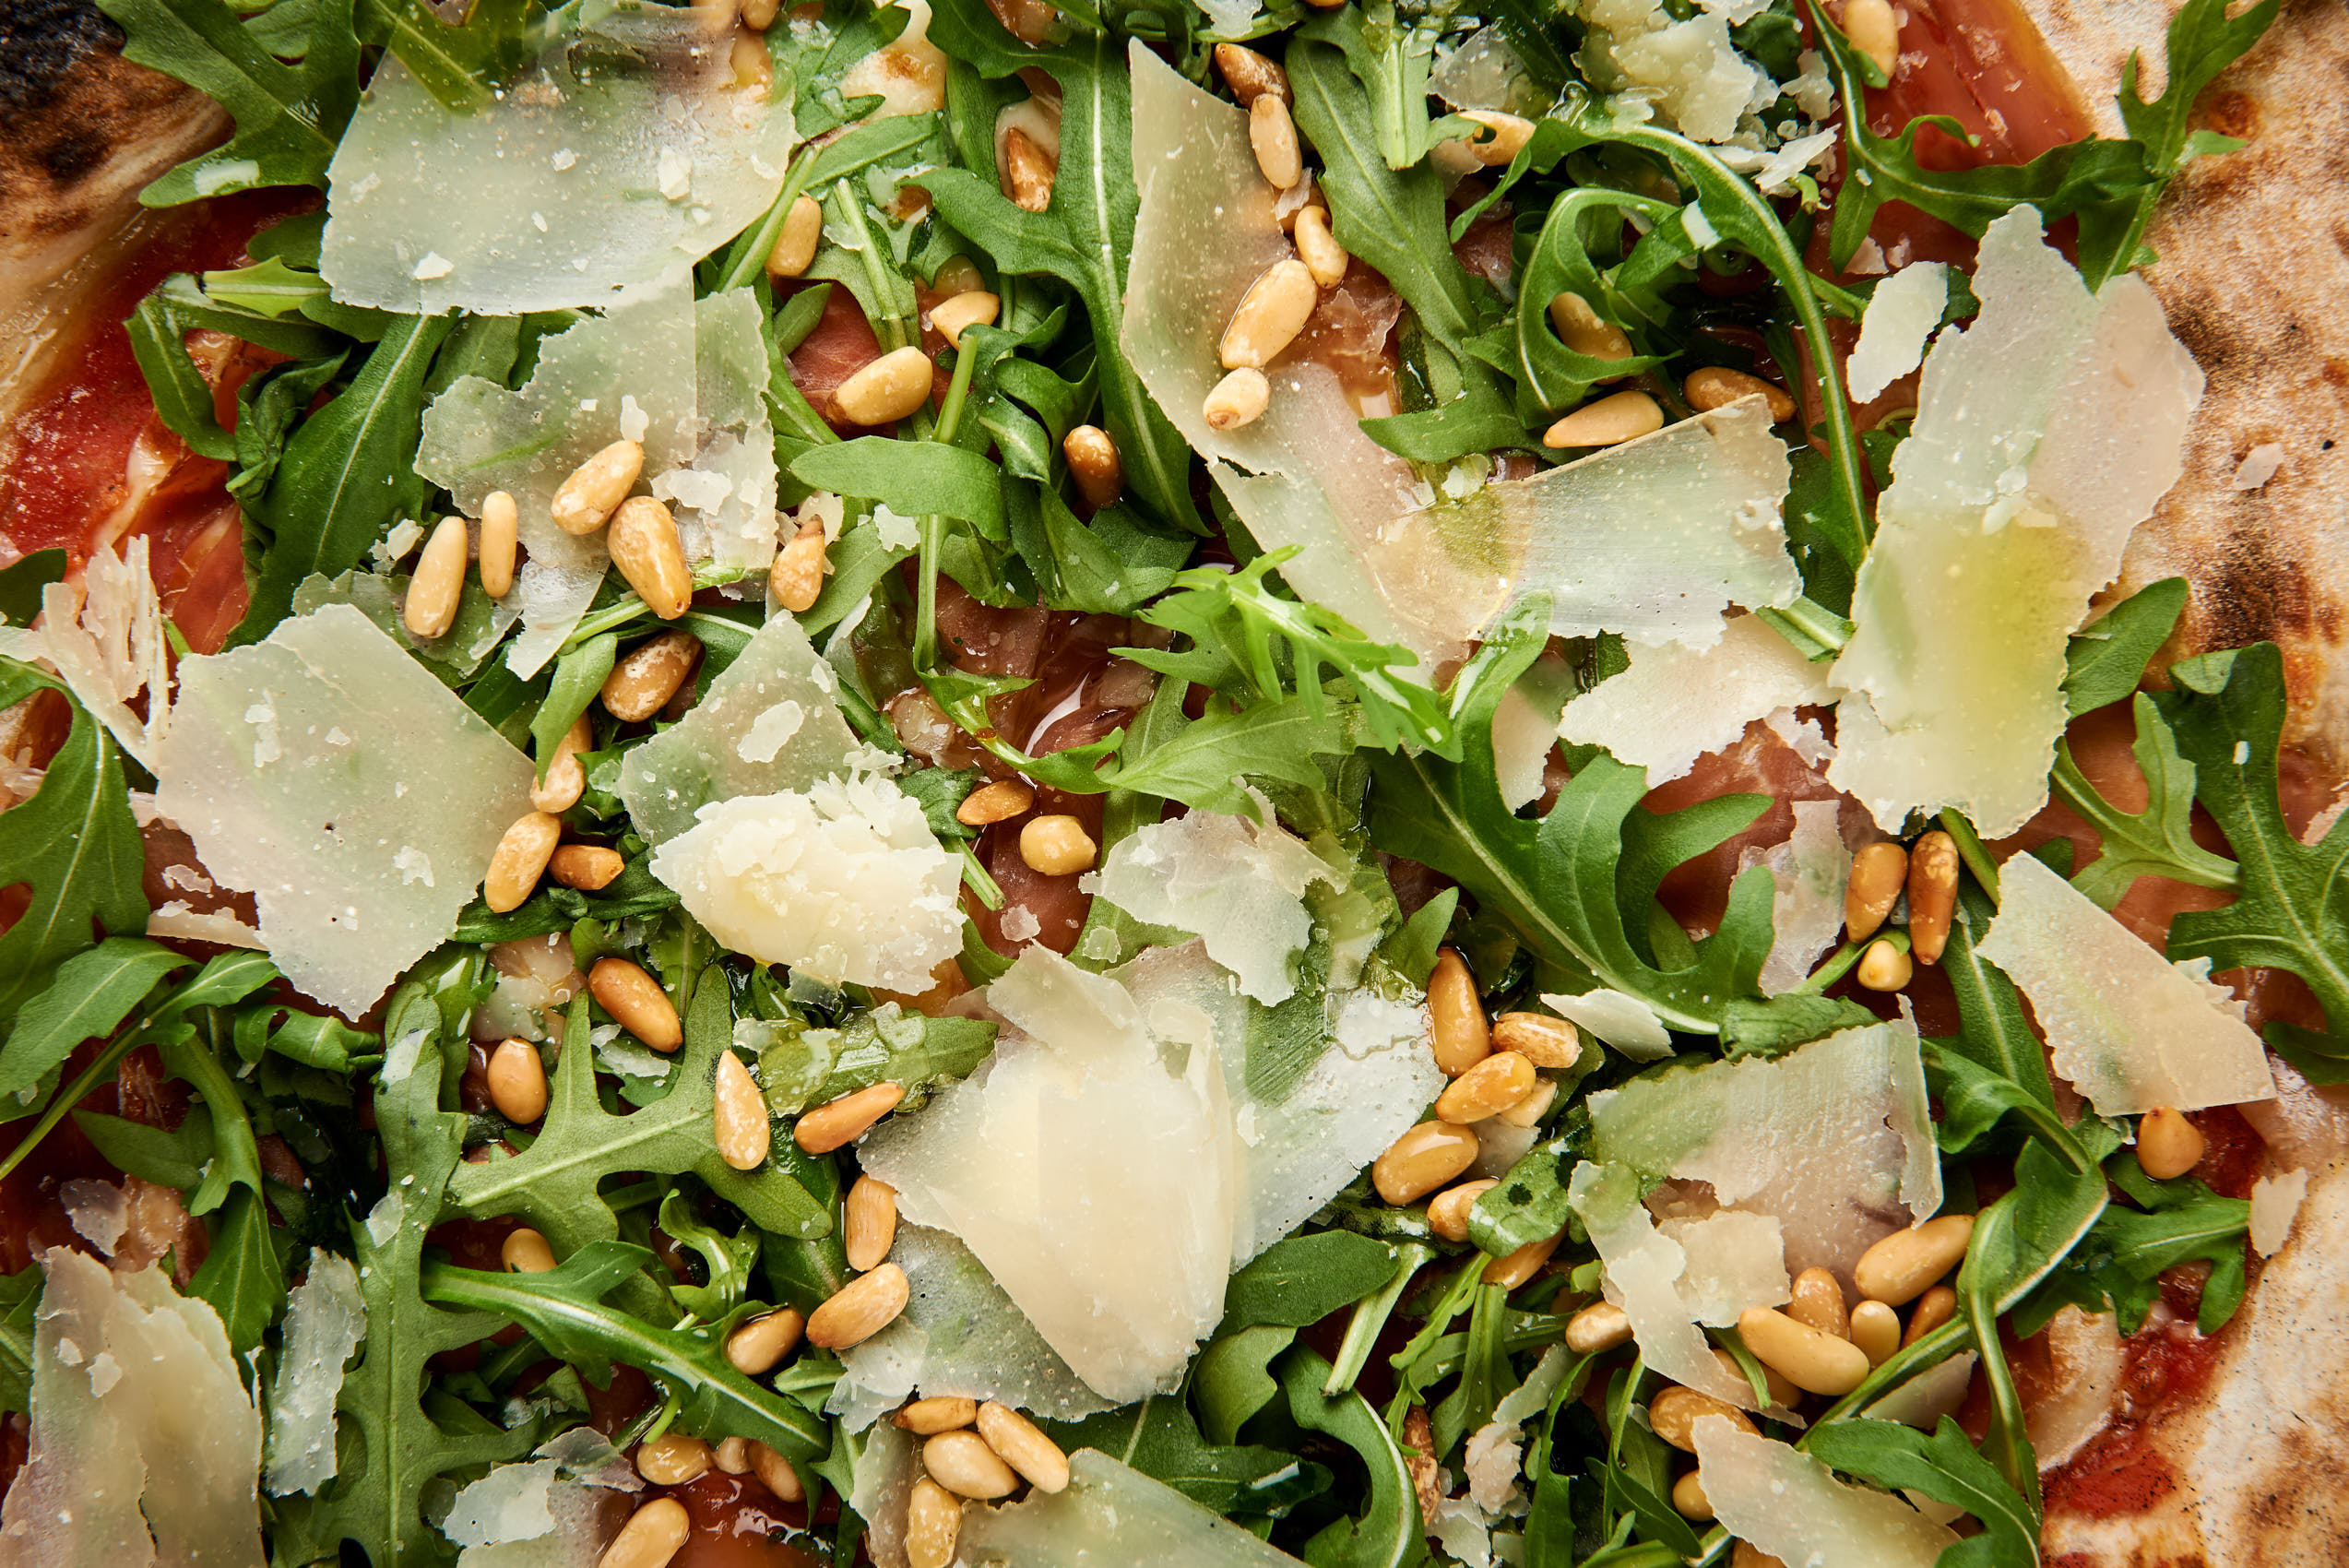 Parmapizza with pine nuts closeup photo by Marcel Tiedje